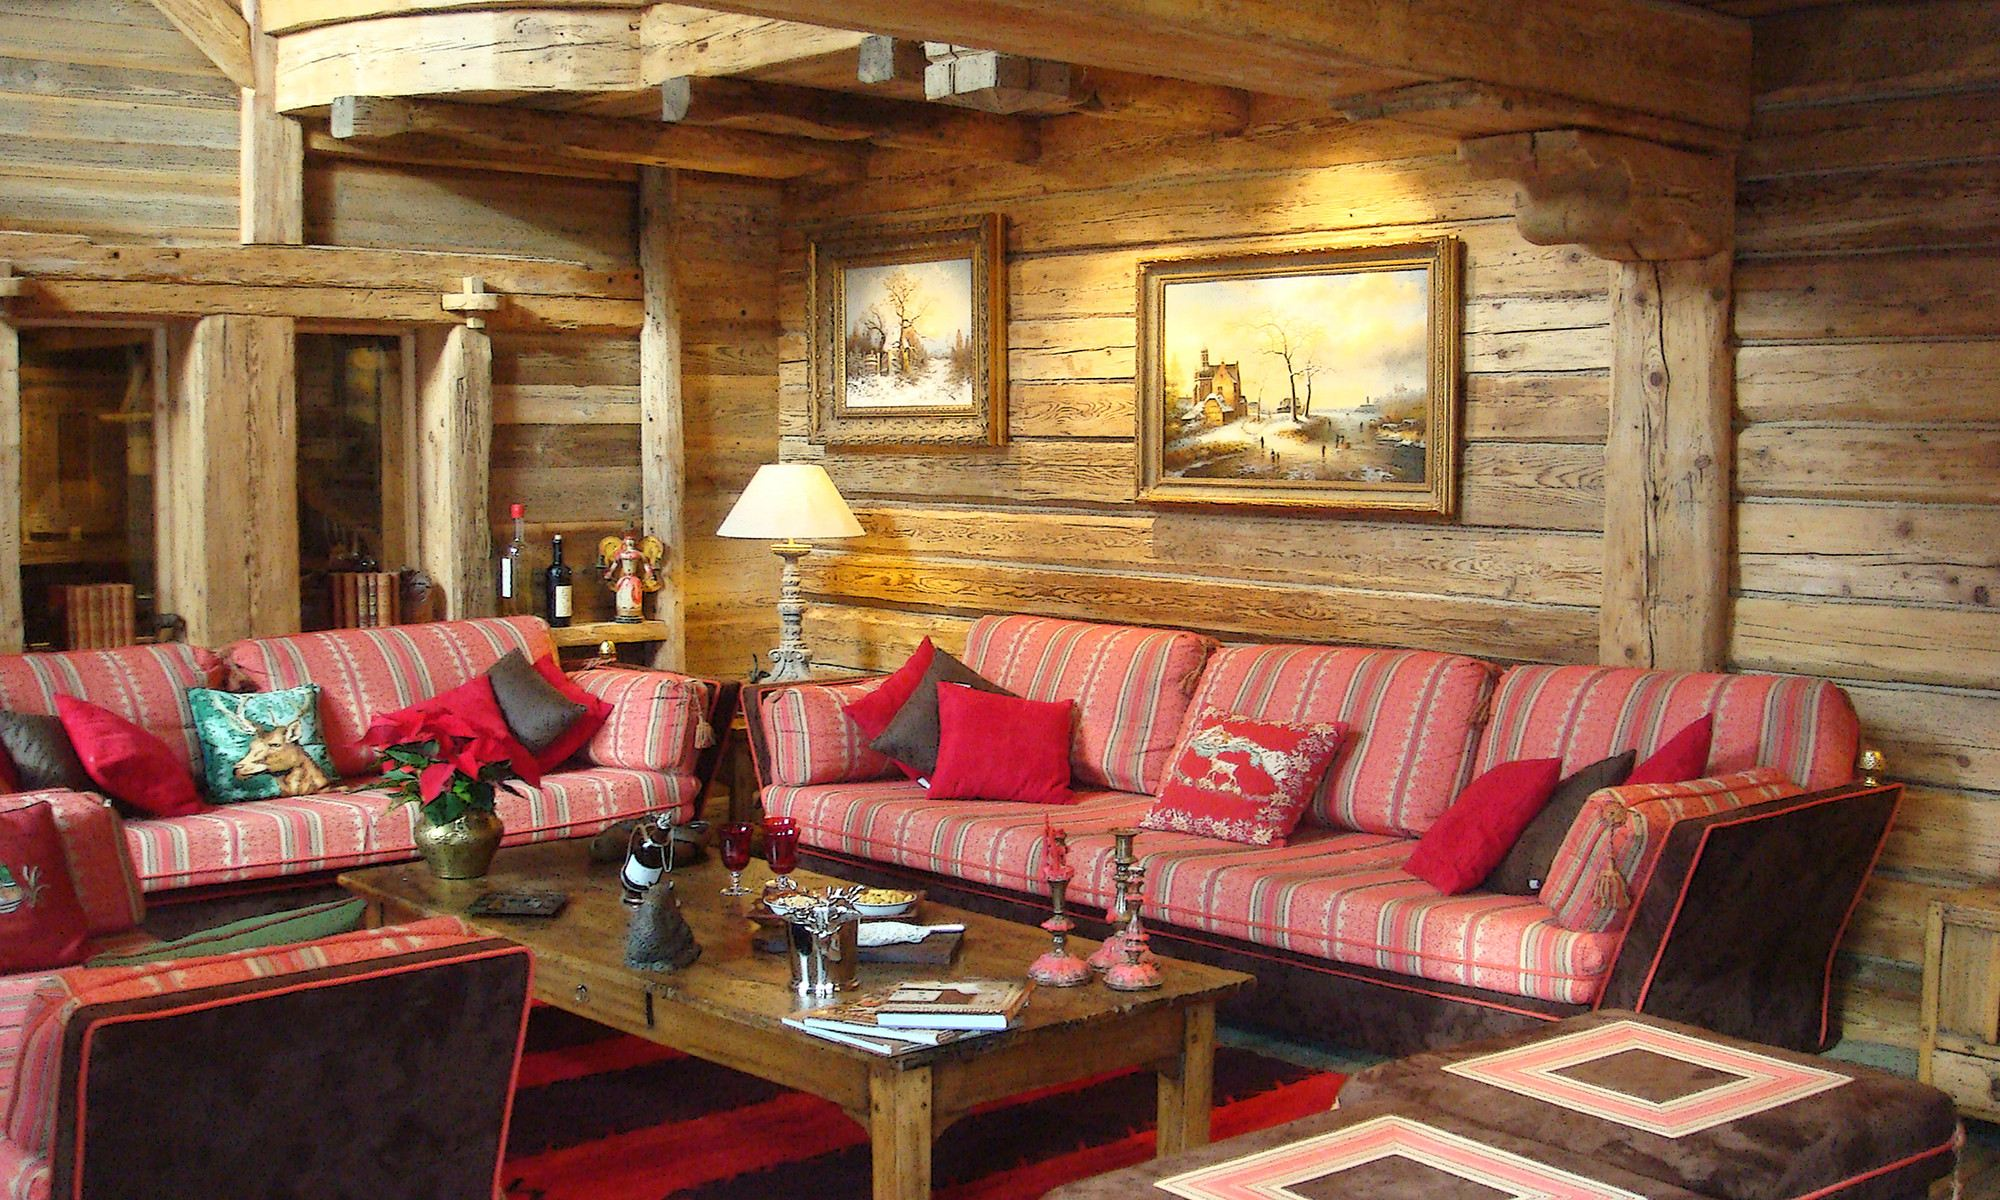 Single Family Home for Sale at Méribel Luxury chalet Rubis Courchevel, Rhone-Alpes 73120 France